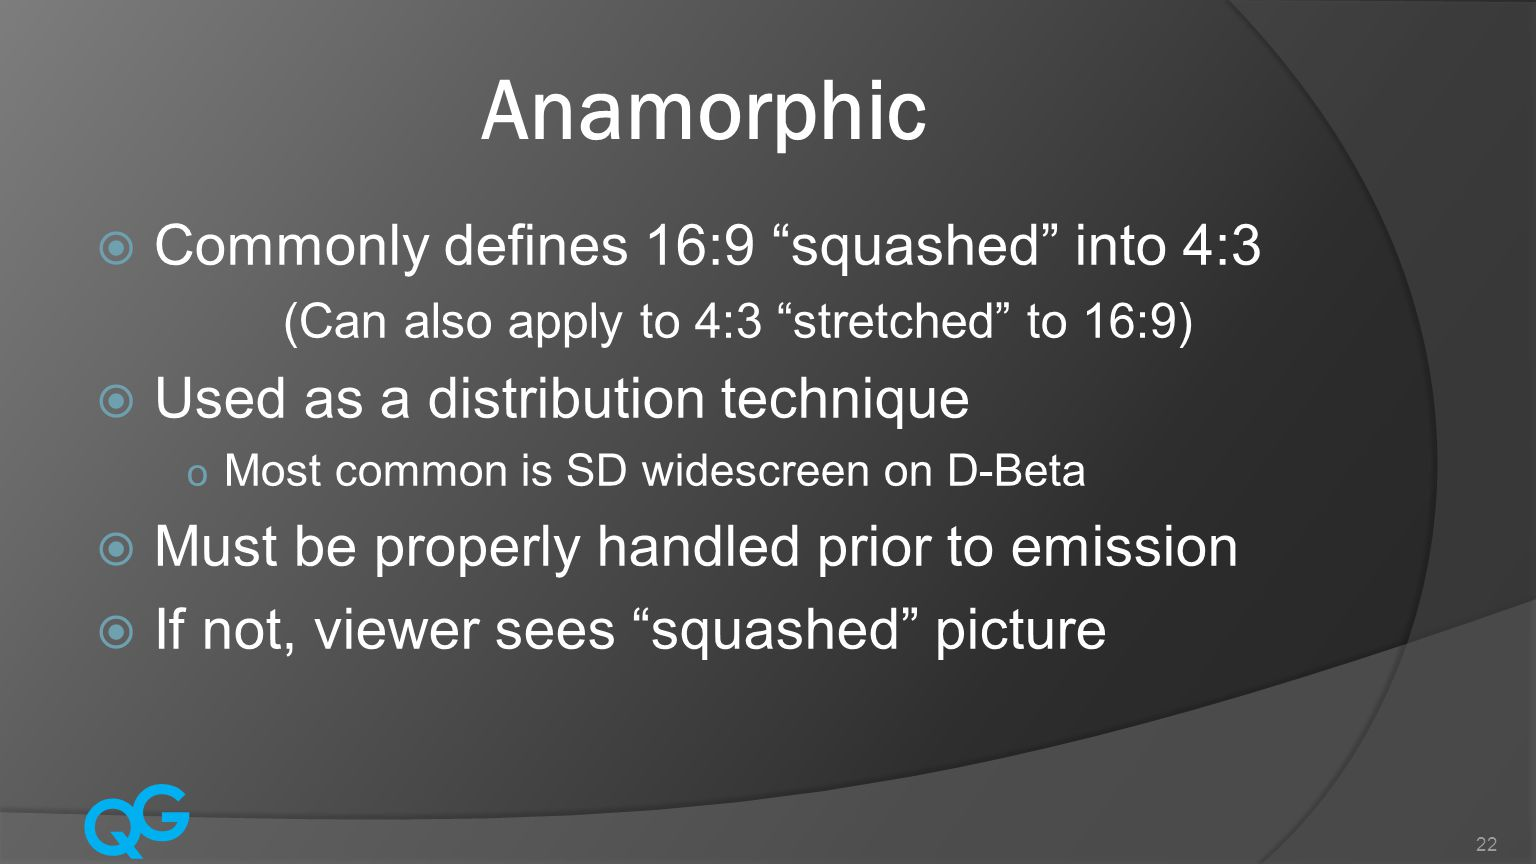 Anamorphic Commonly defines 16:9 squashed into 4:3